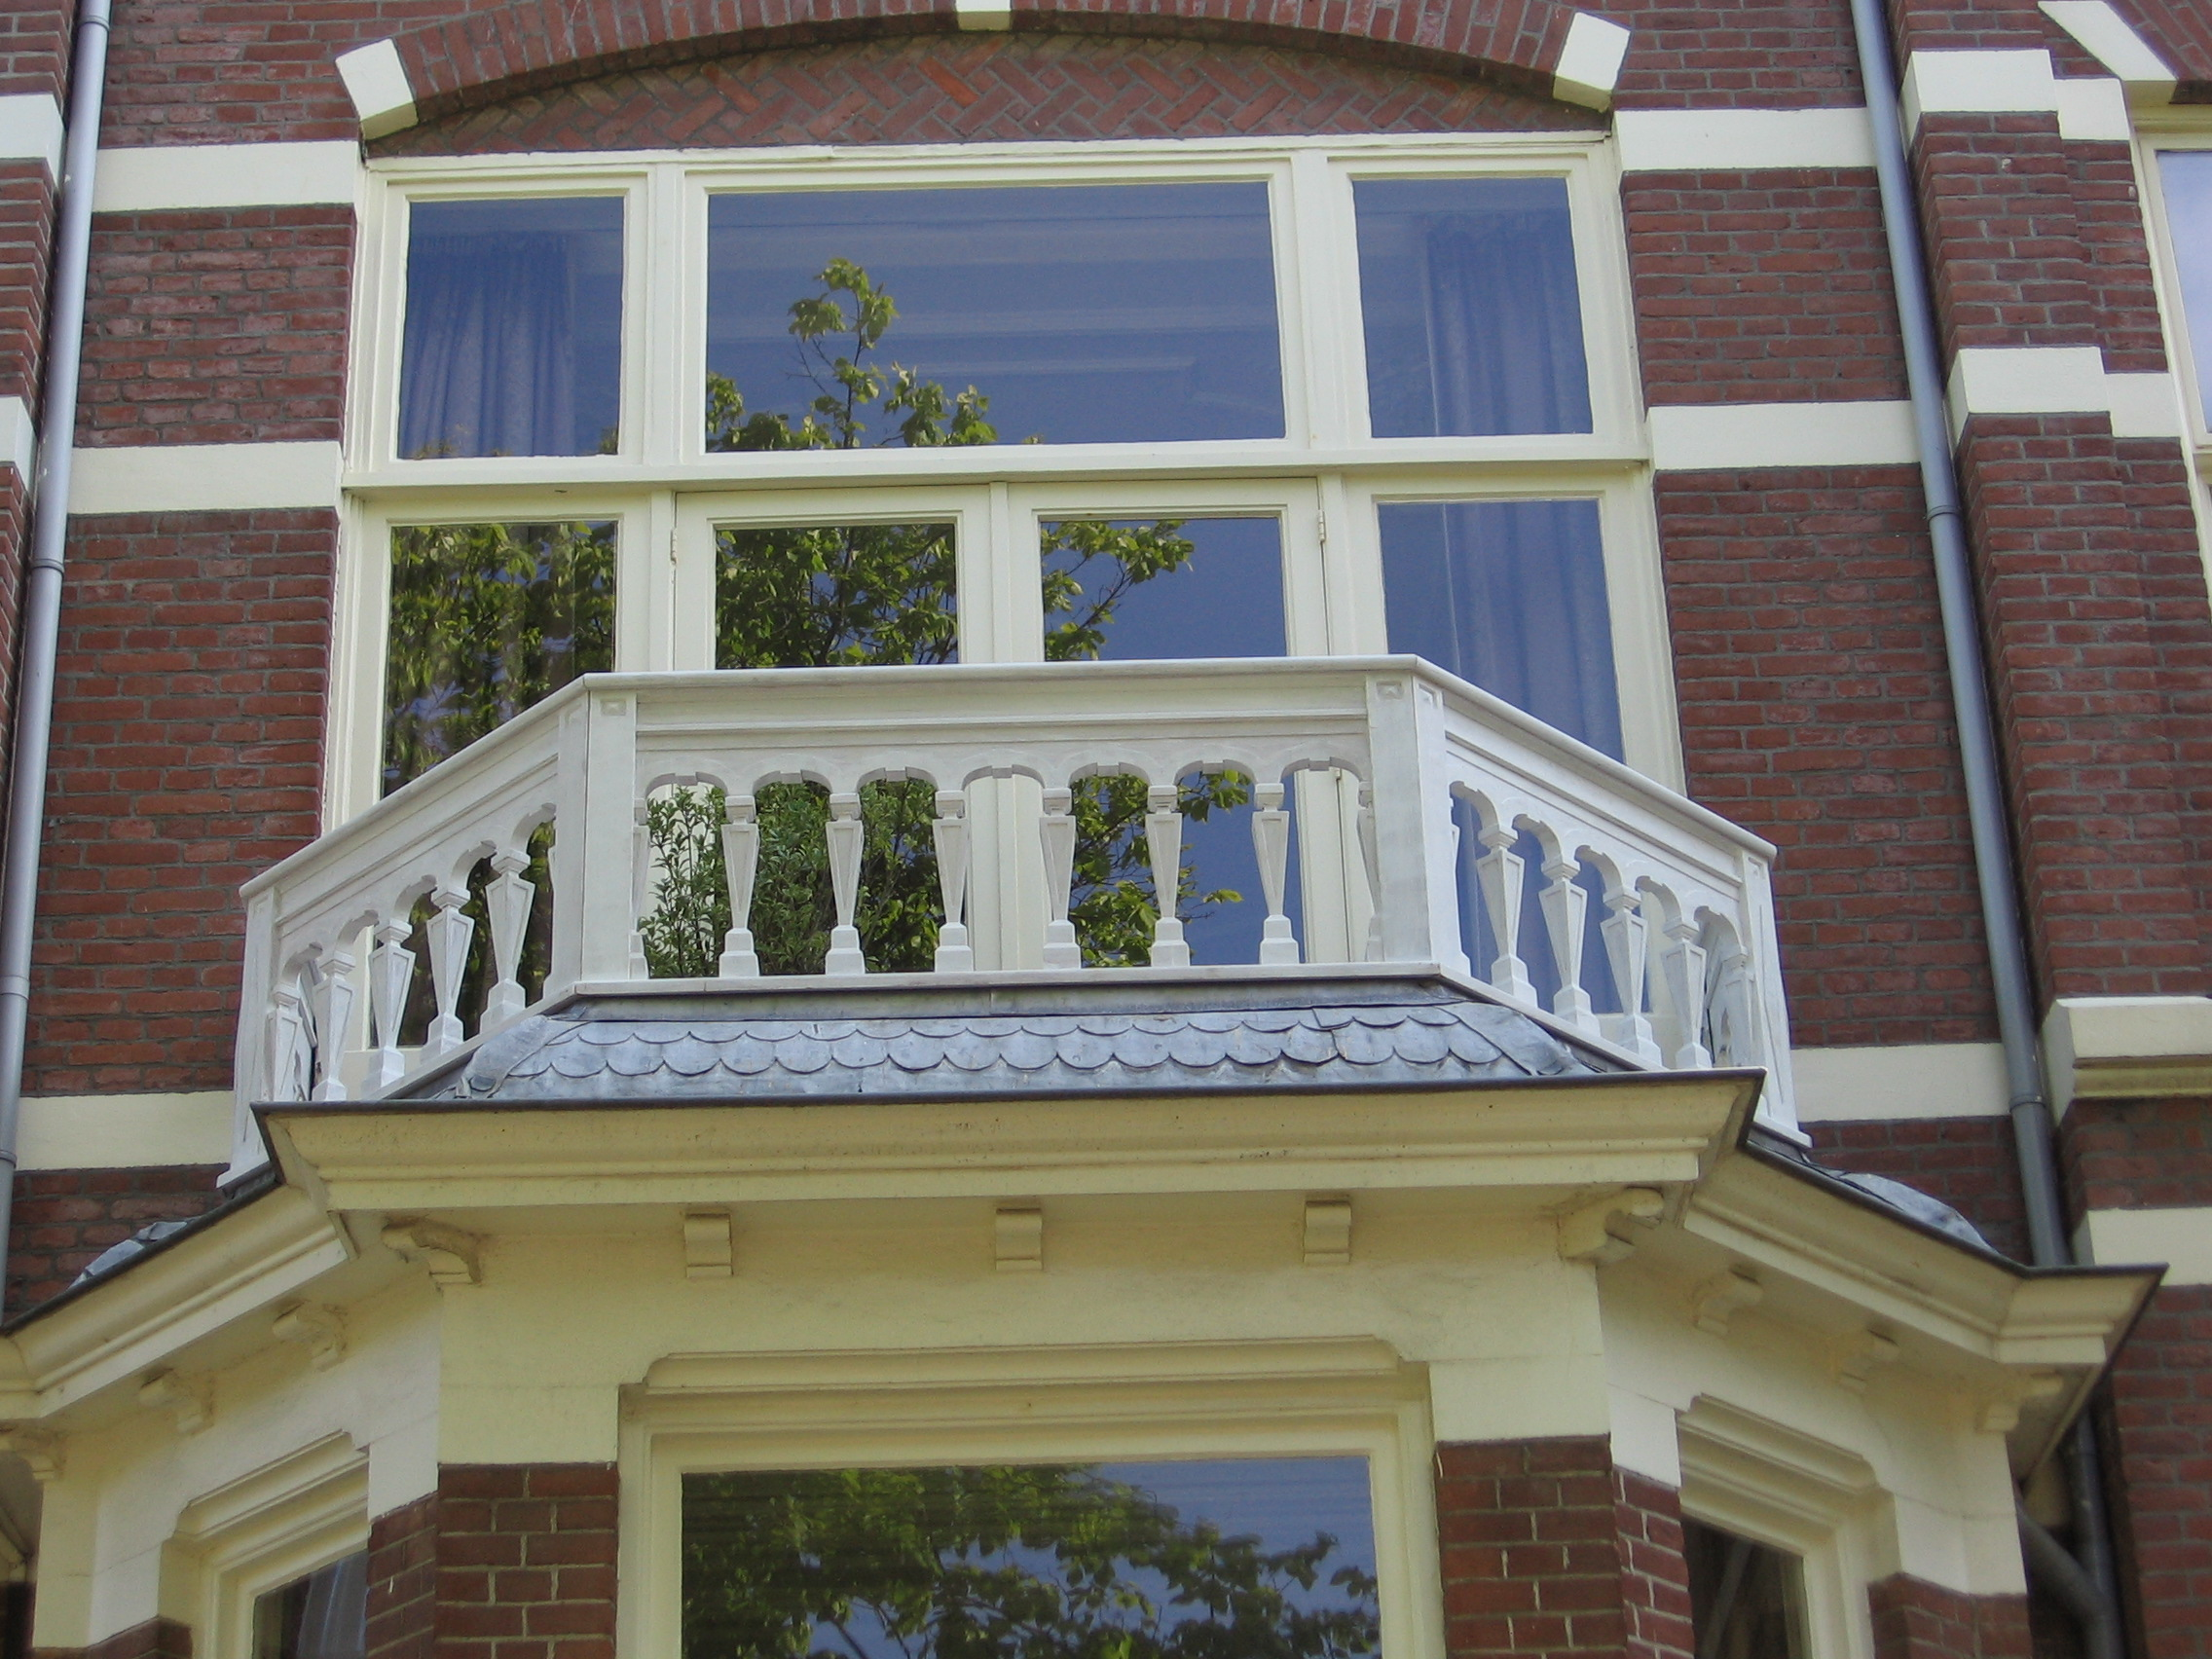 """Projectmanagement"" Rotten wooden balcony replaced in keeping with the traditional style of the house."